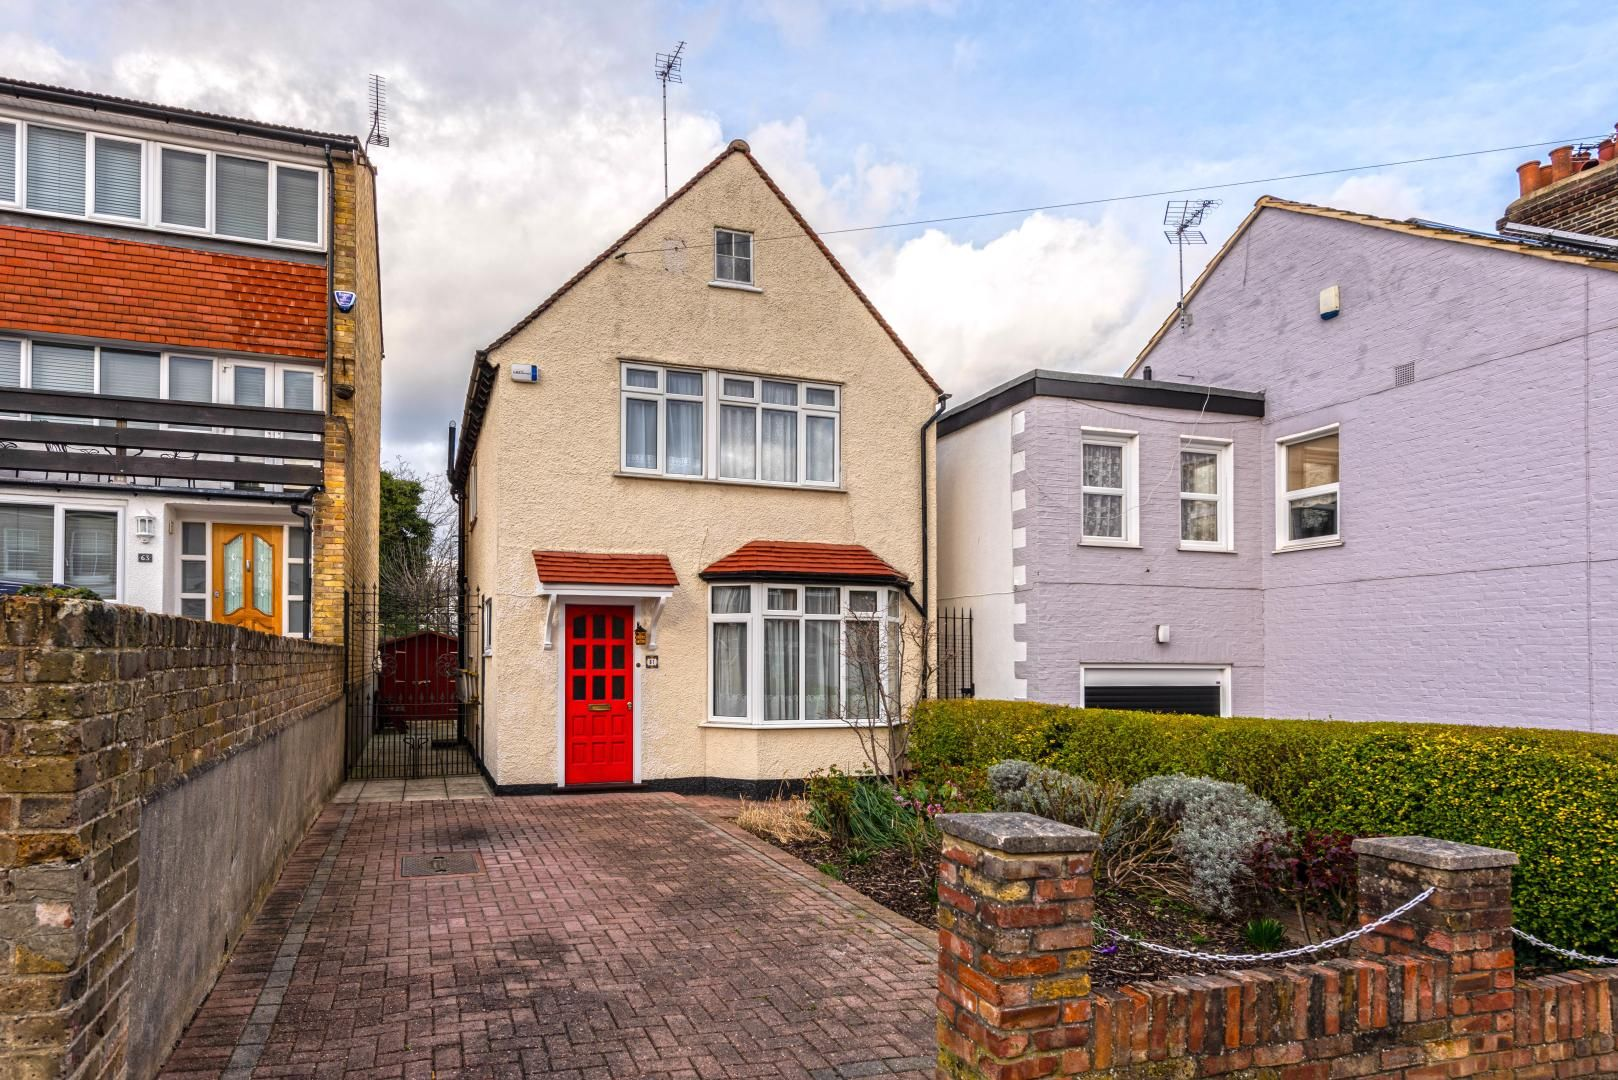 3 bed house for sale in Princes Road, IG9